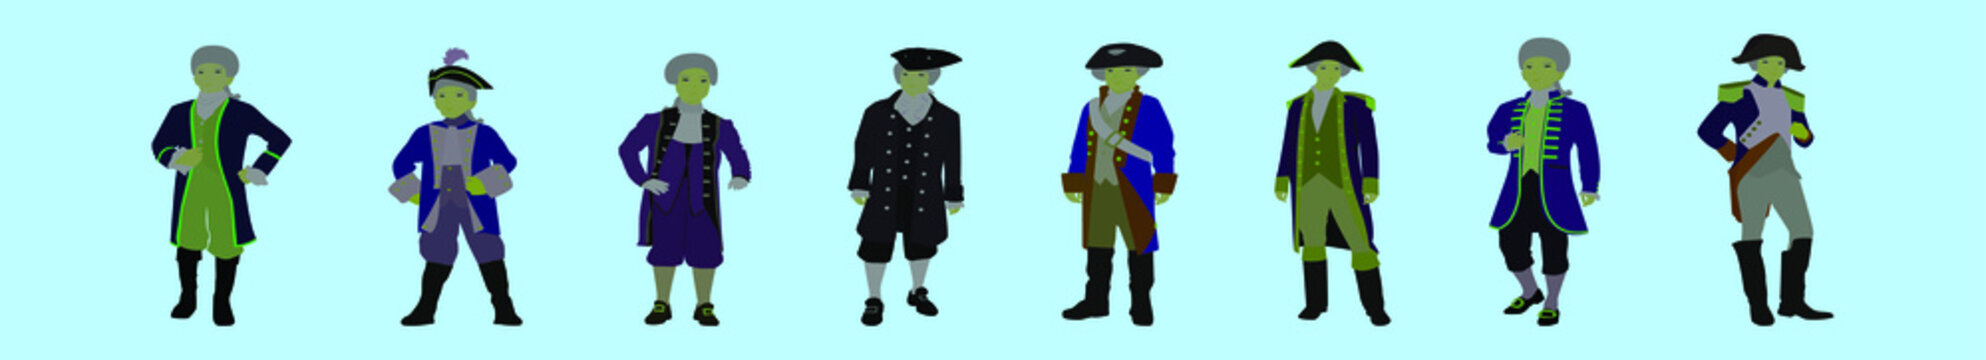 set of colonial cartoon icon design template with various models. vector illustration isolated on blue background